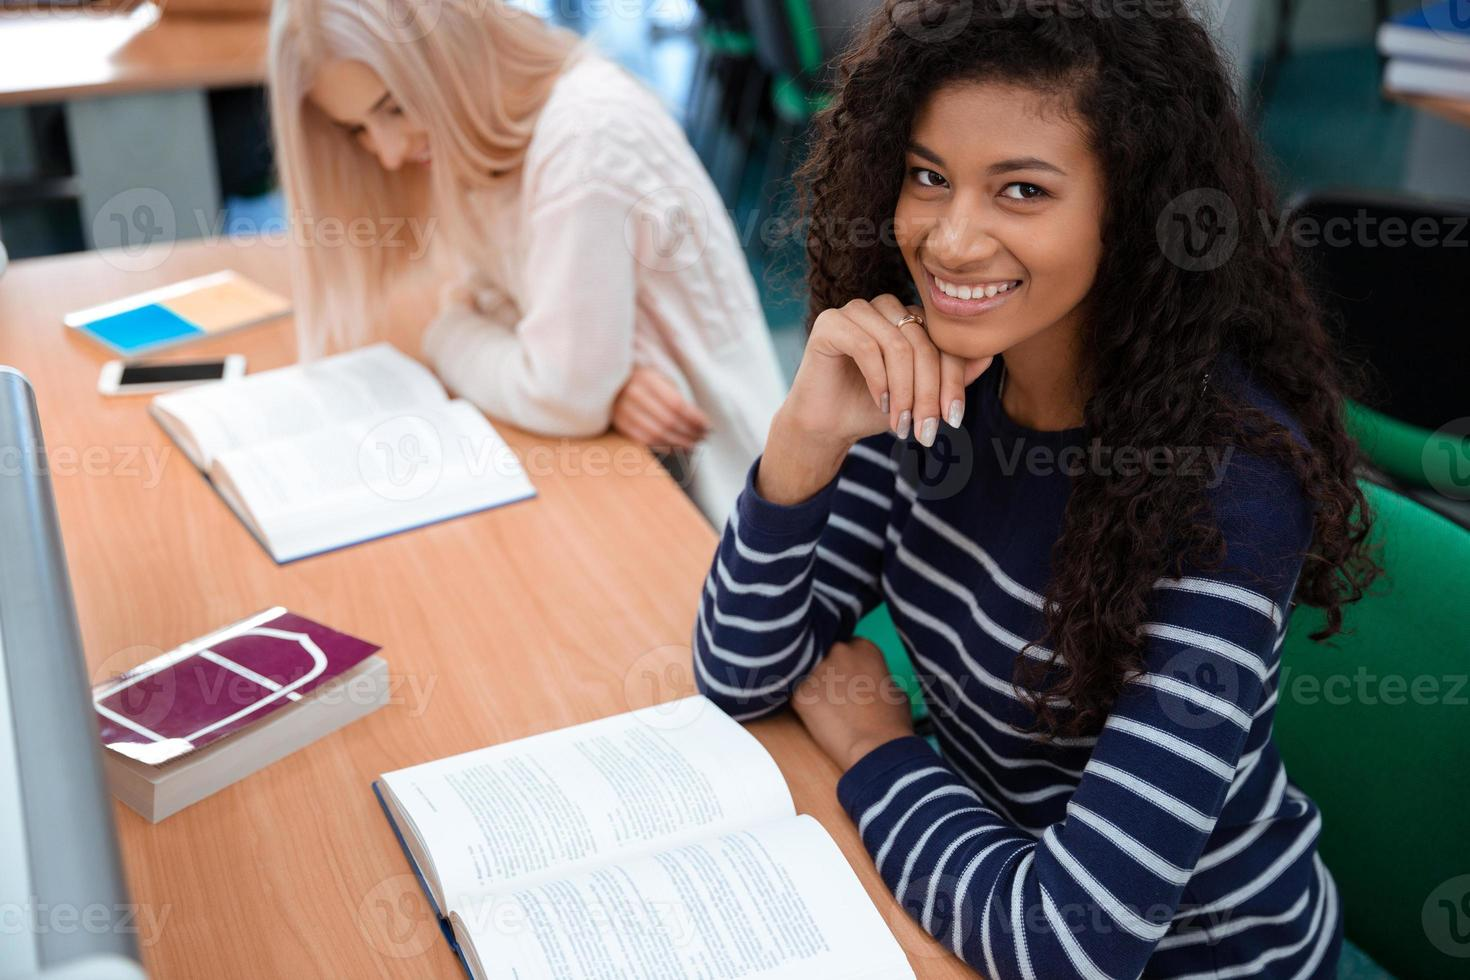 Female students reading books in university photo